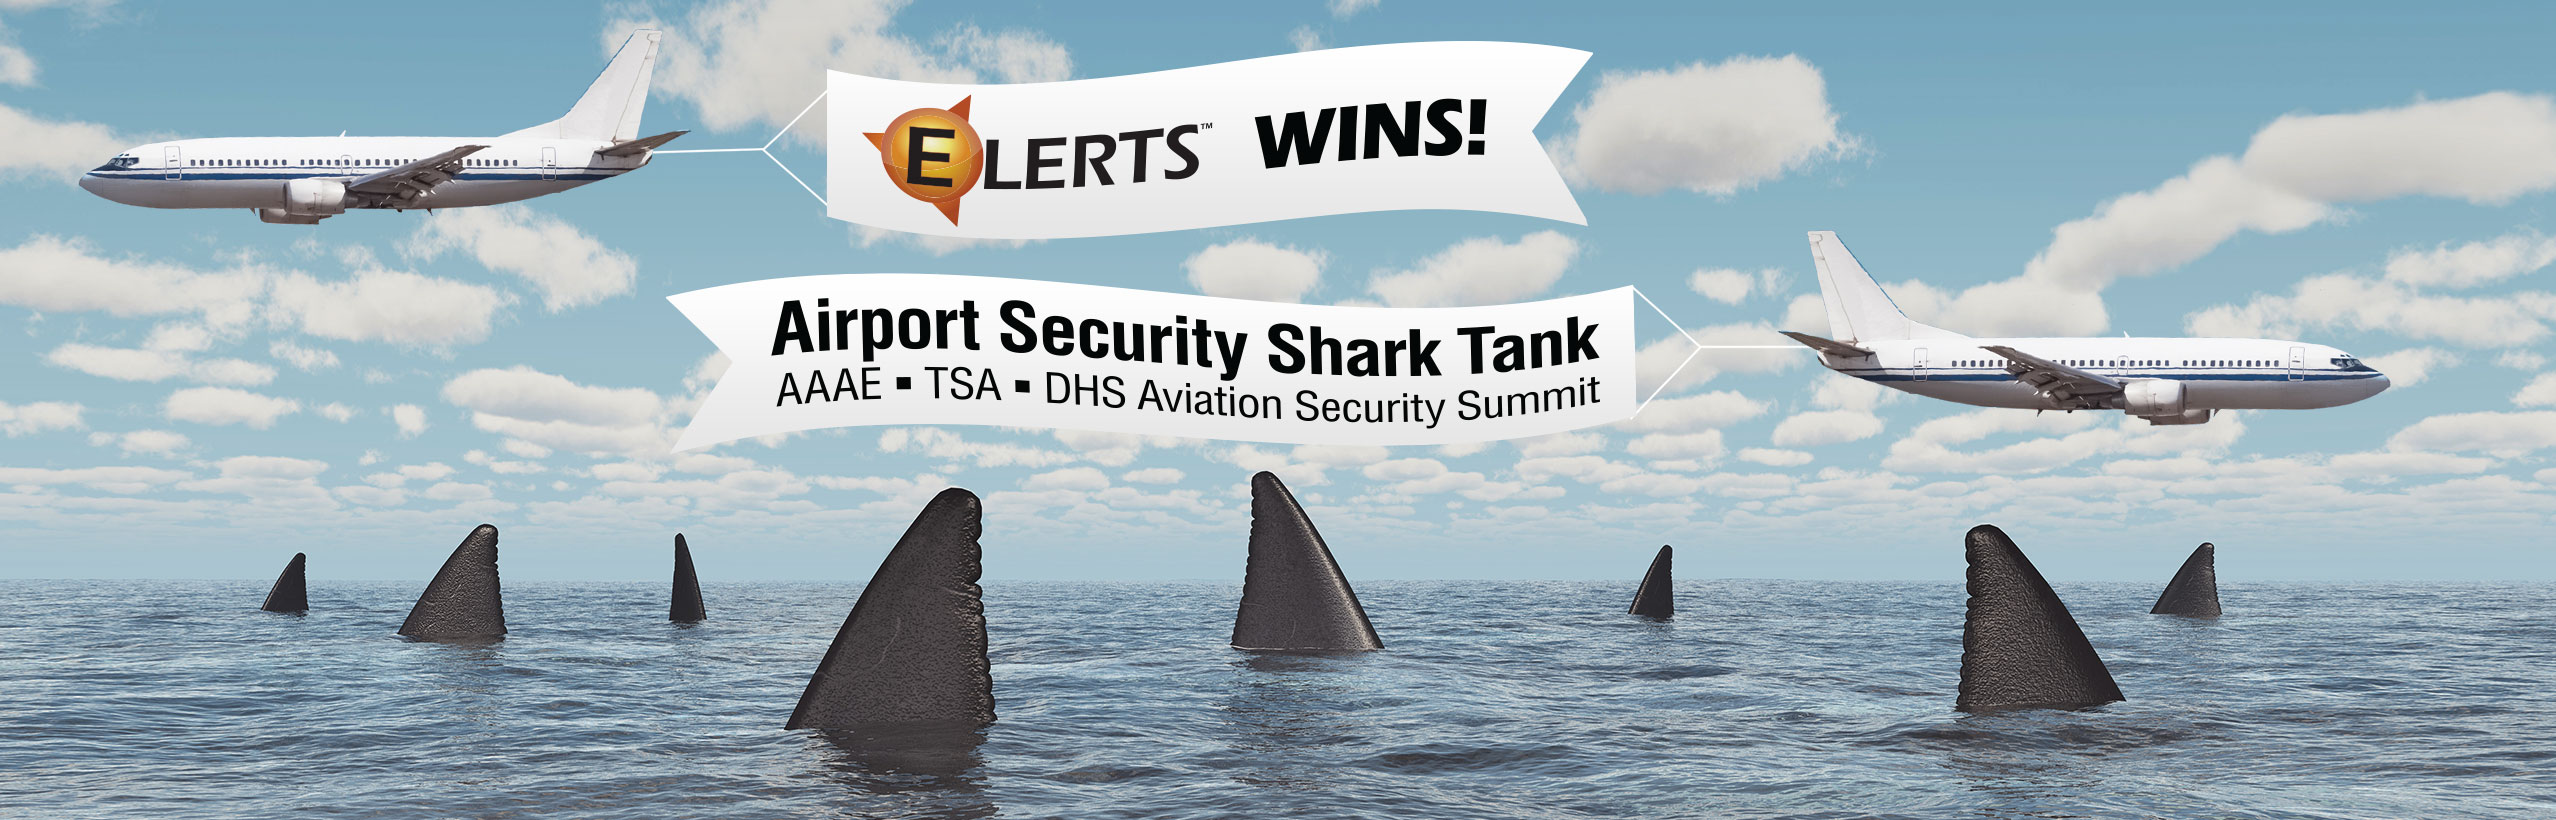 Airport Security Shark Tank